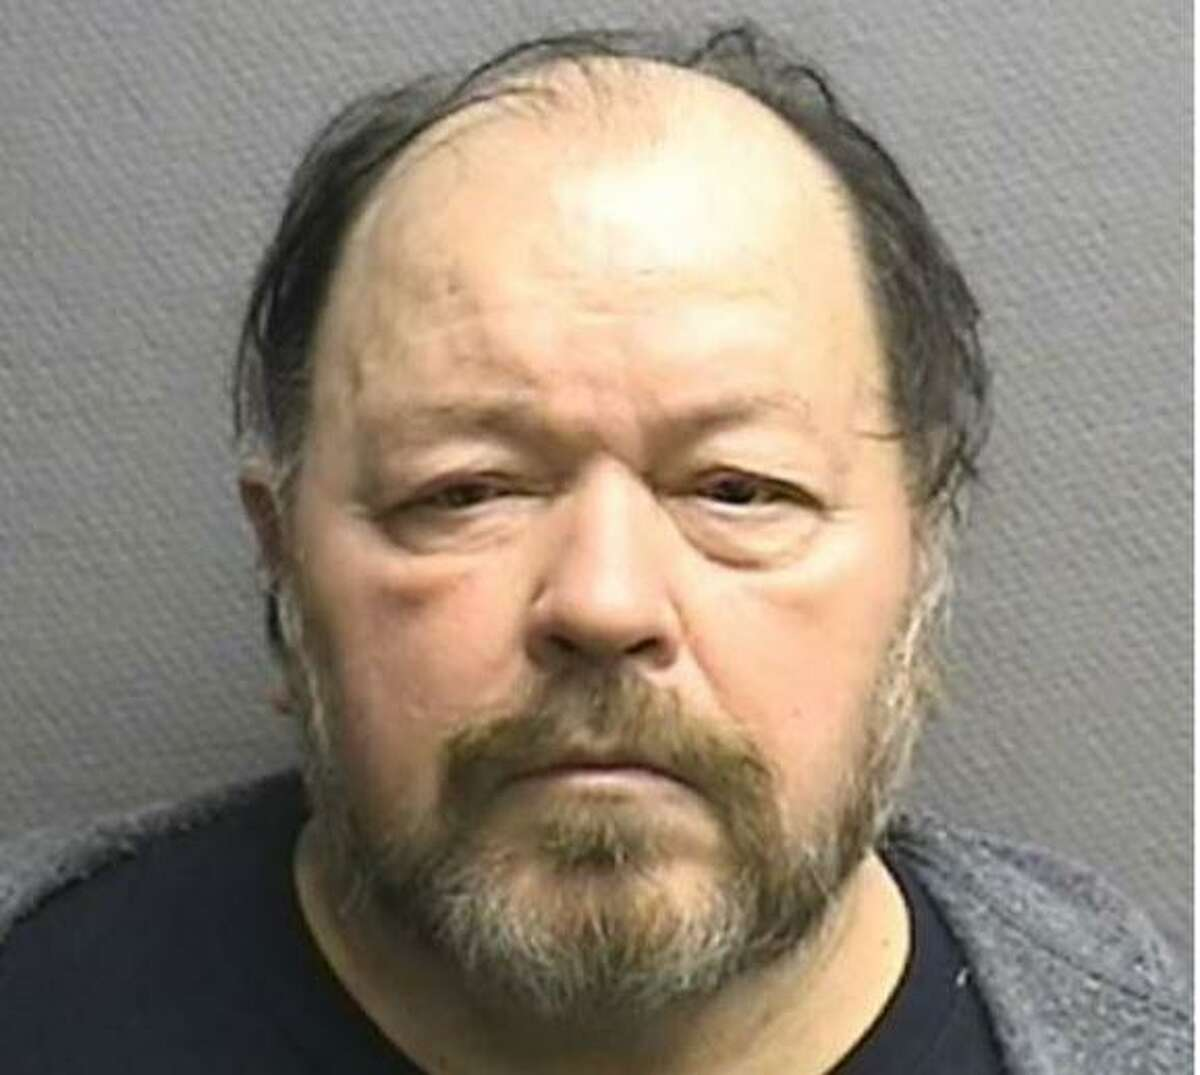 Raymond Gene Lazarine, 67, had verbally and physically abused his wife, Deborah Lazarine, for years, according to Harris County prosecutors.